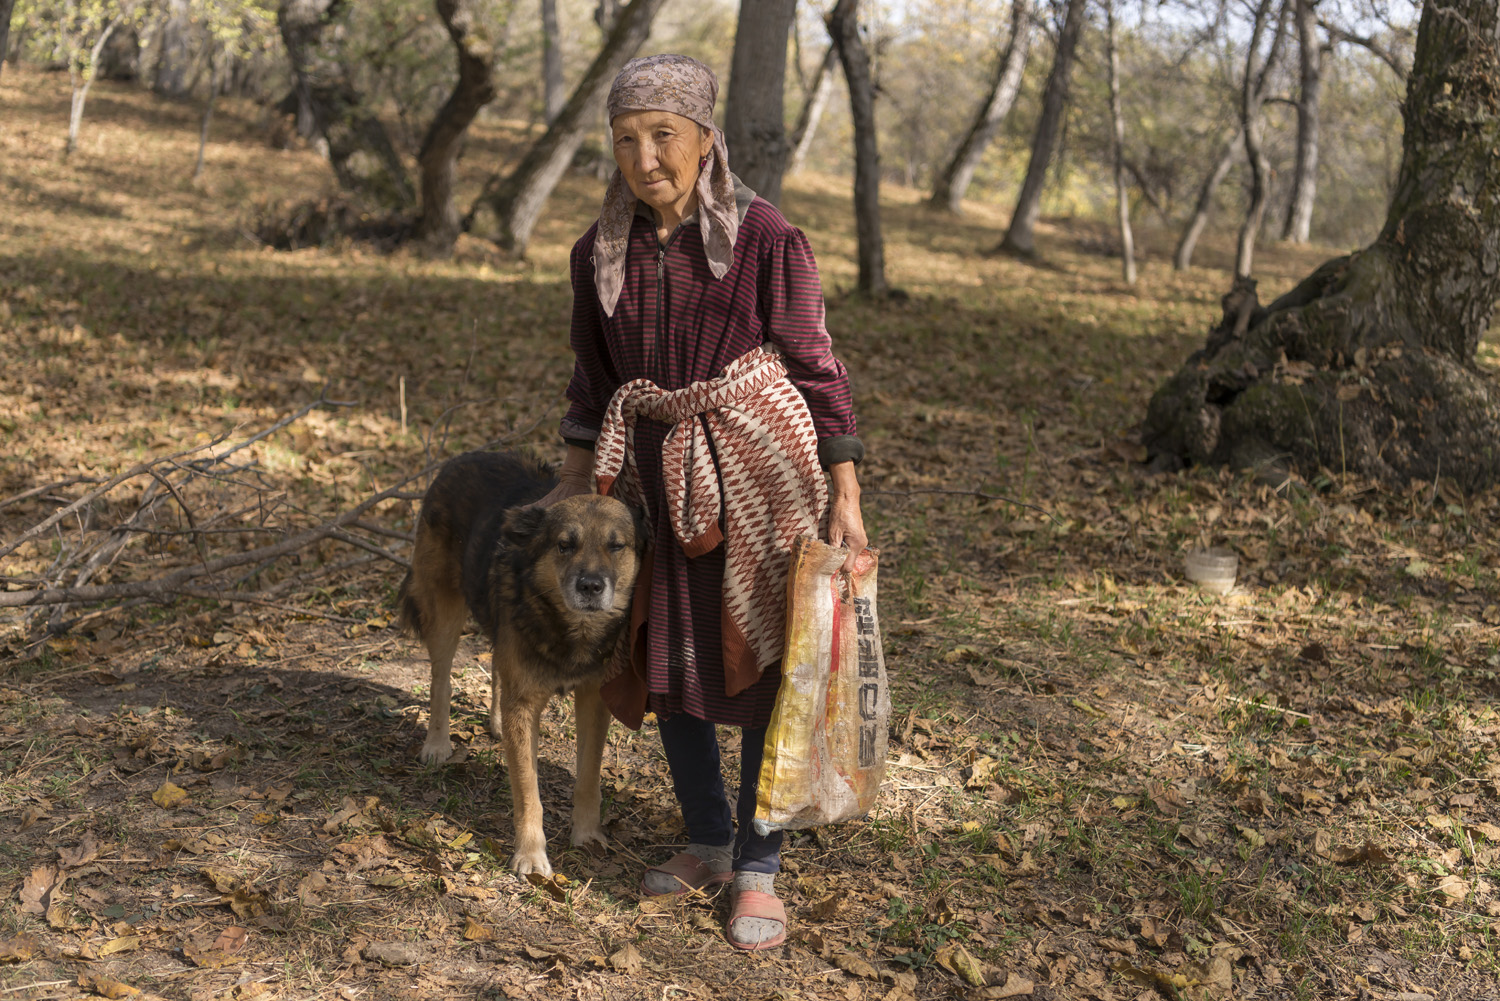 walnuts-picking-kyrgyzstan-child-arslanbob-soviet-union-russia-old-woman-forest-collectingh-walnuts.jpg